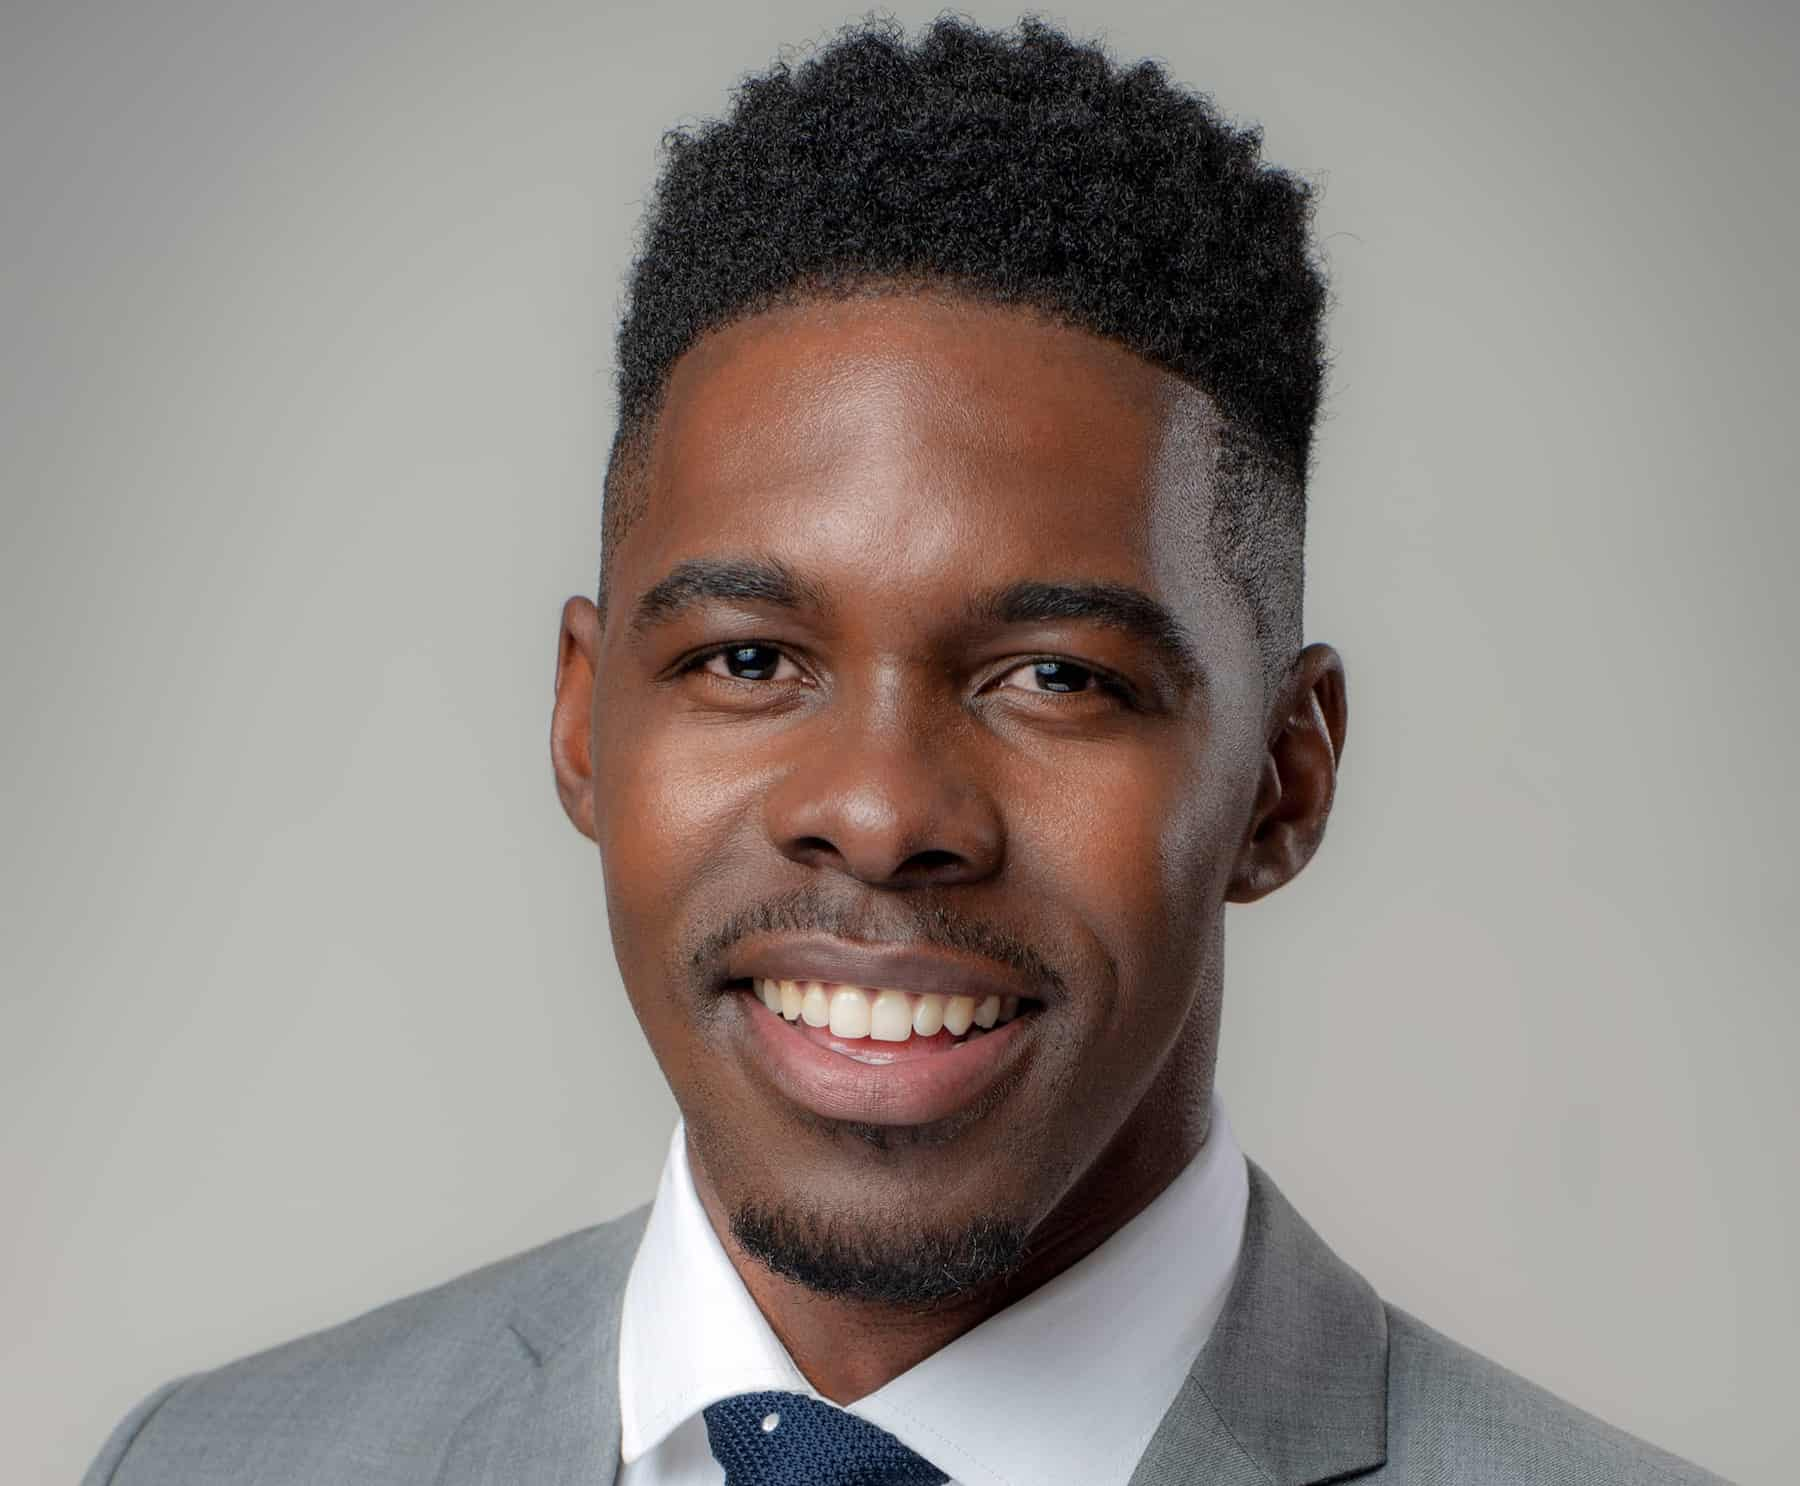 Luis Munana Is The First Male Namibian To Be Named In Forbes Africa 30 Under 30 List